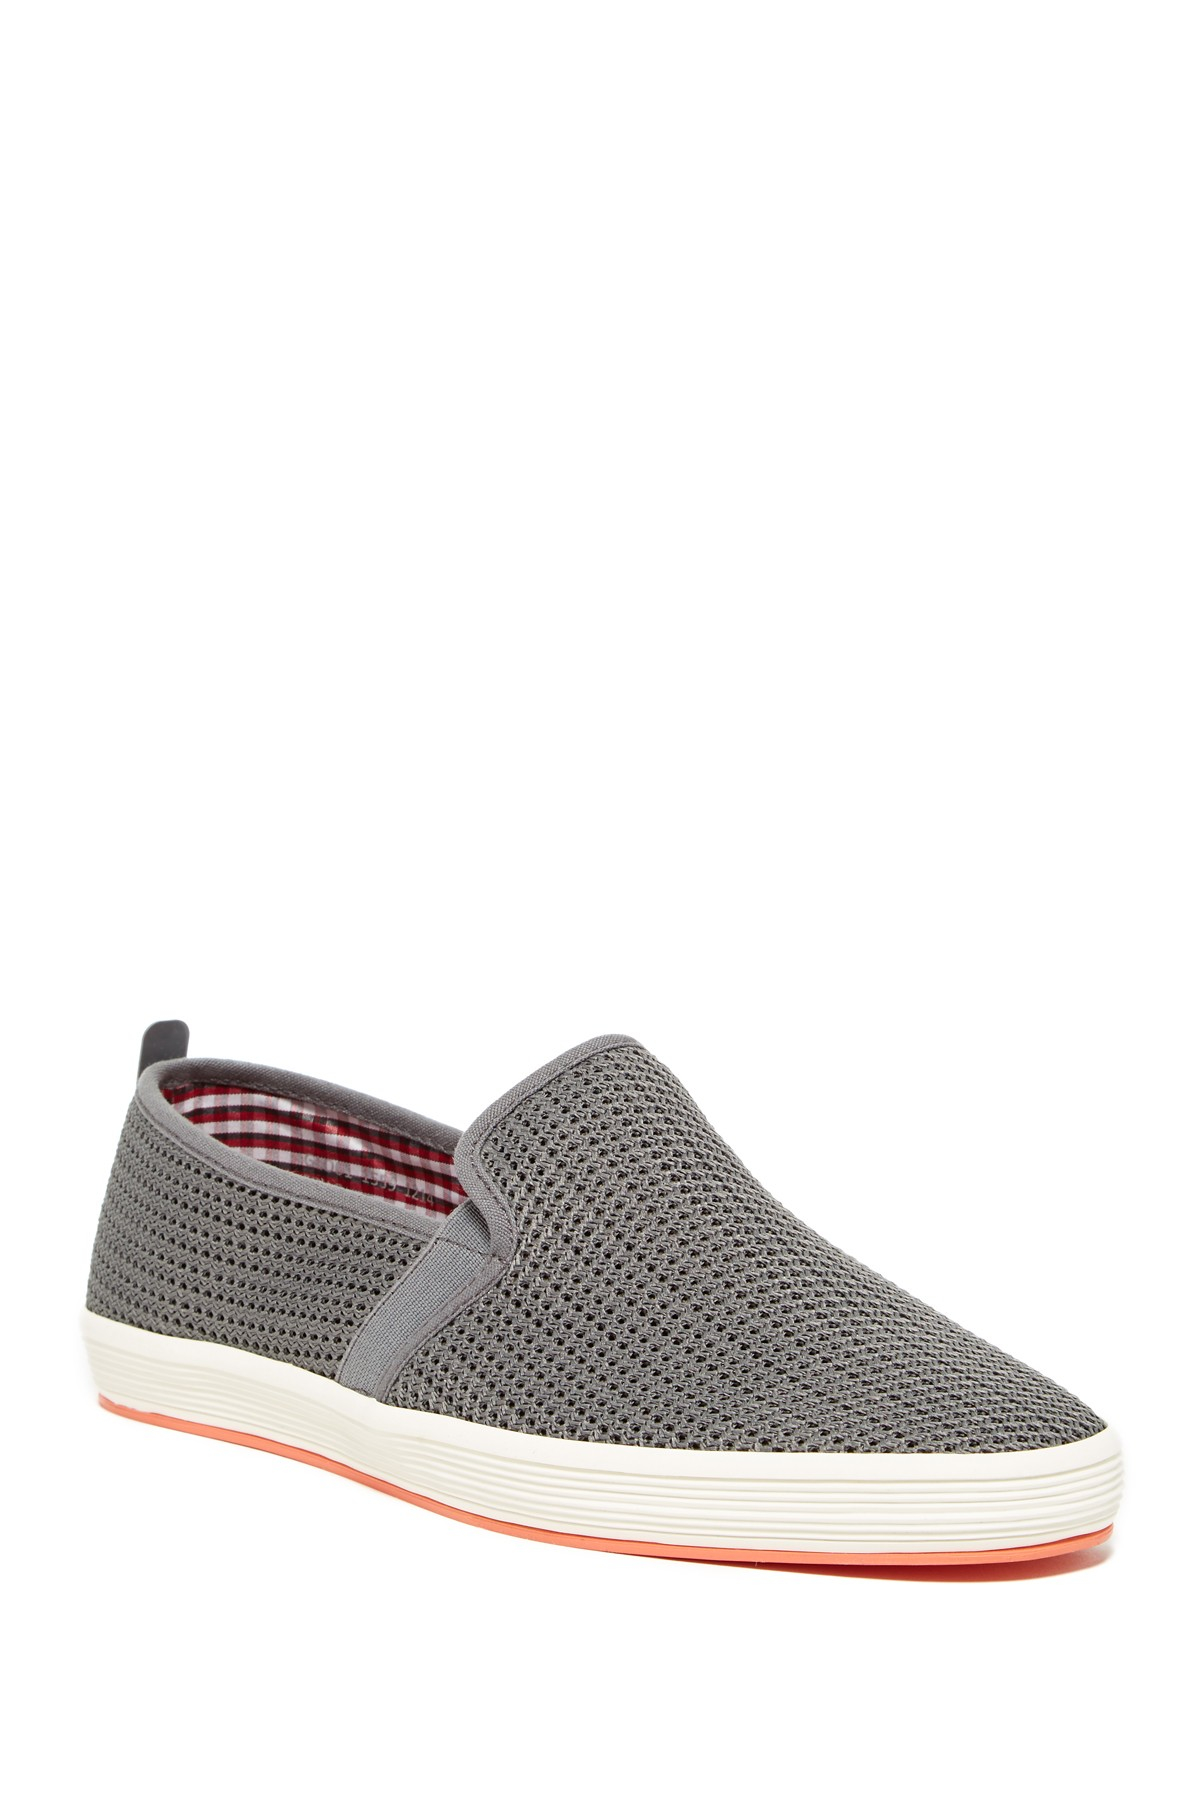 Fish n chips fry 2 mesh slip on in grey for men grey for Fish and chips shoes